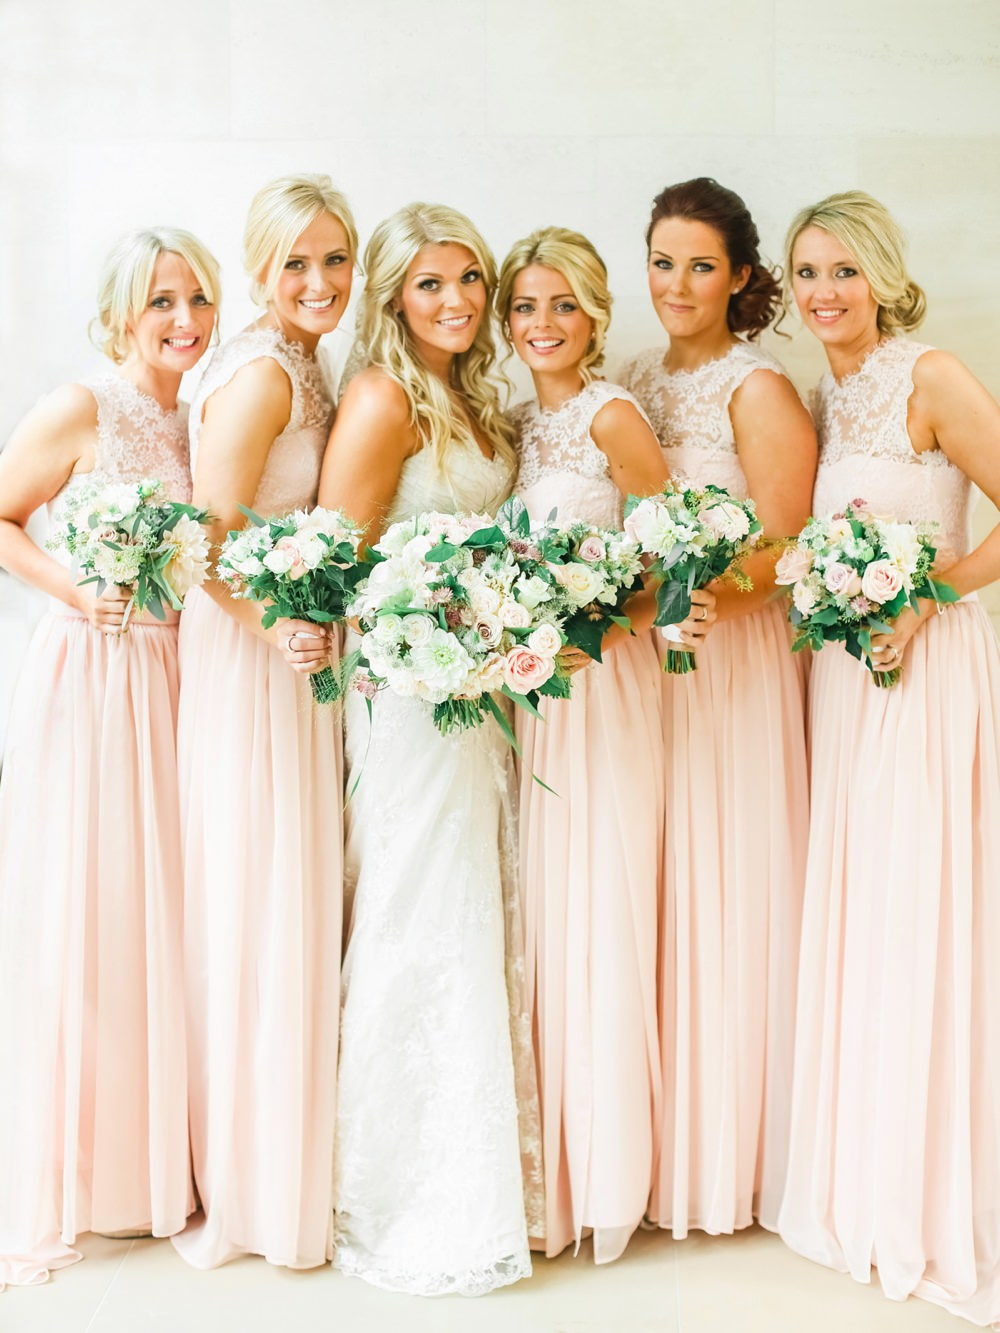 An ian stuart sapphire bridal gown for a classically romantic bridesmaid dresses image by a hrefhttpbelleandbeaublog target ombrellifo Images